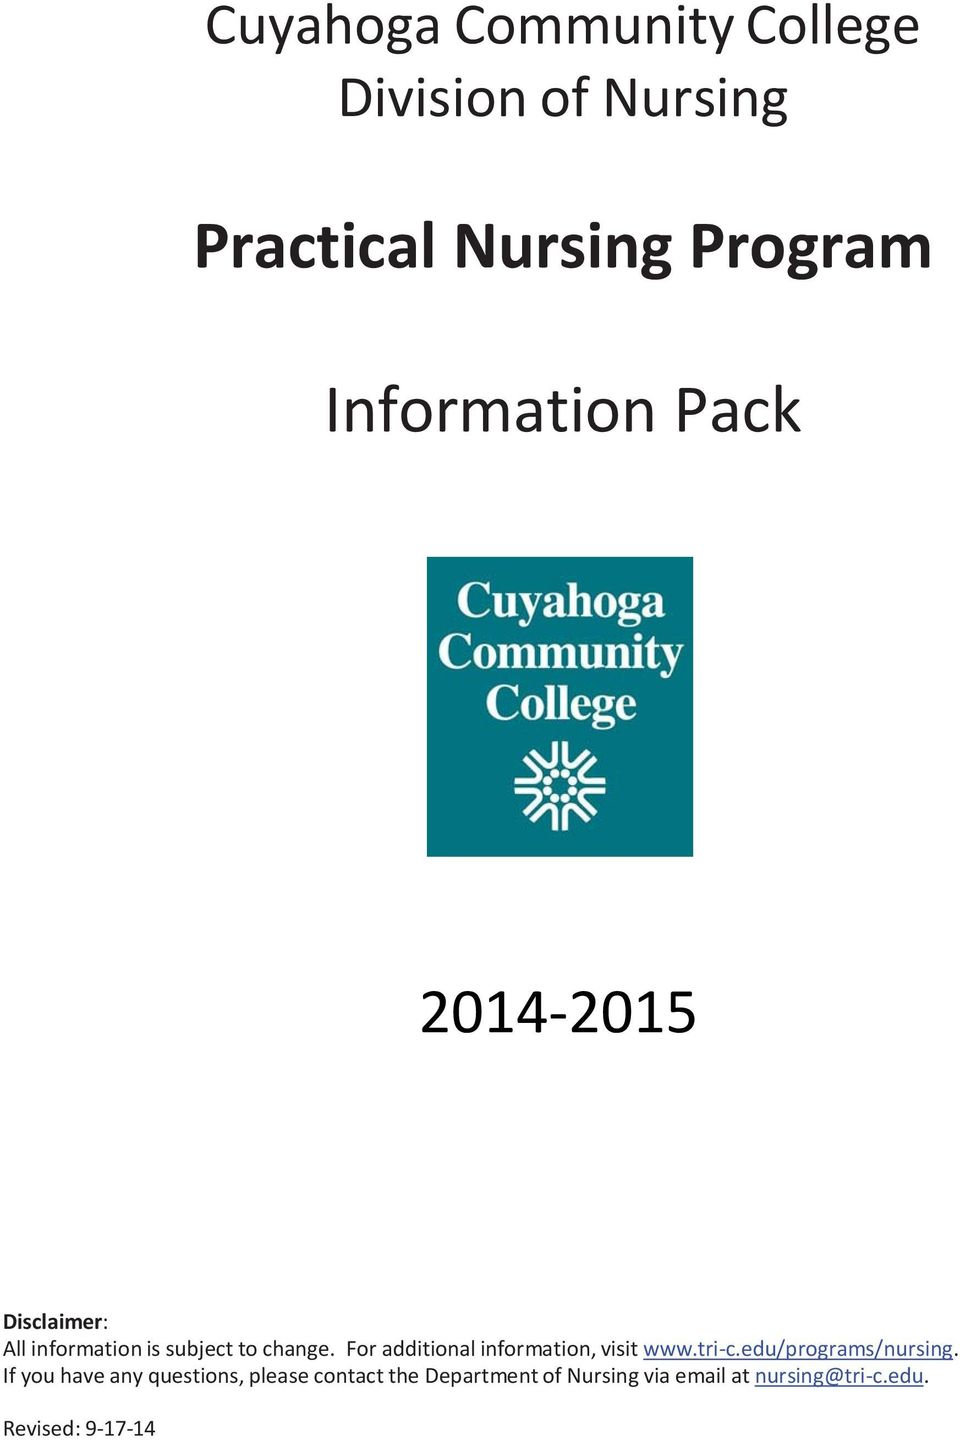 For additional information, visit www.tri c.edu/programs/nursing.